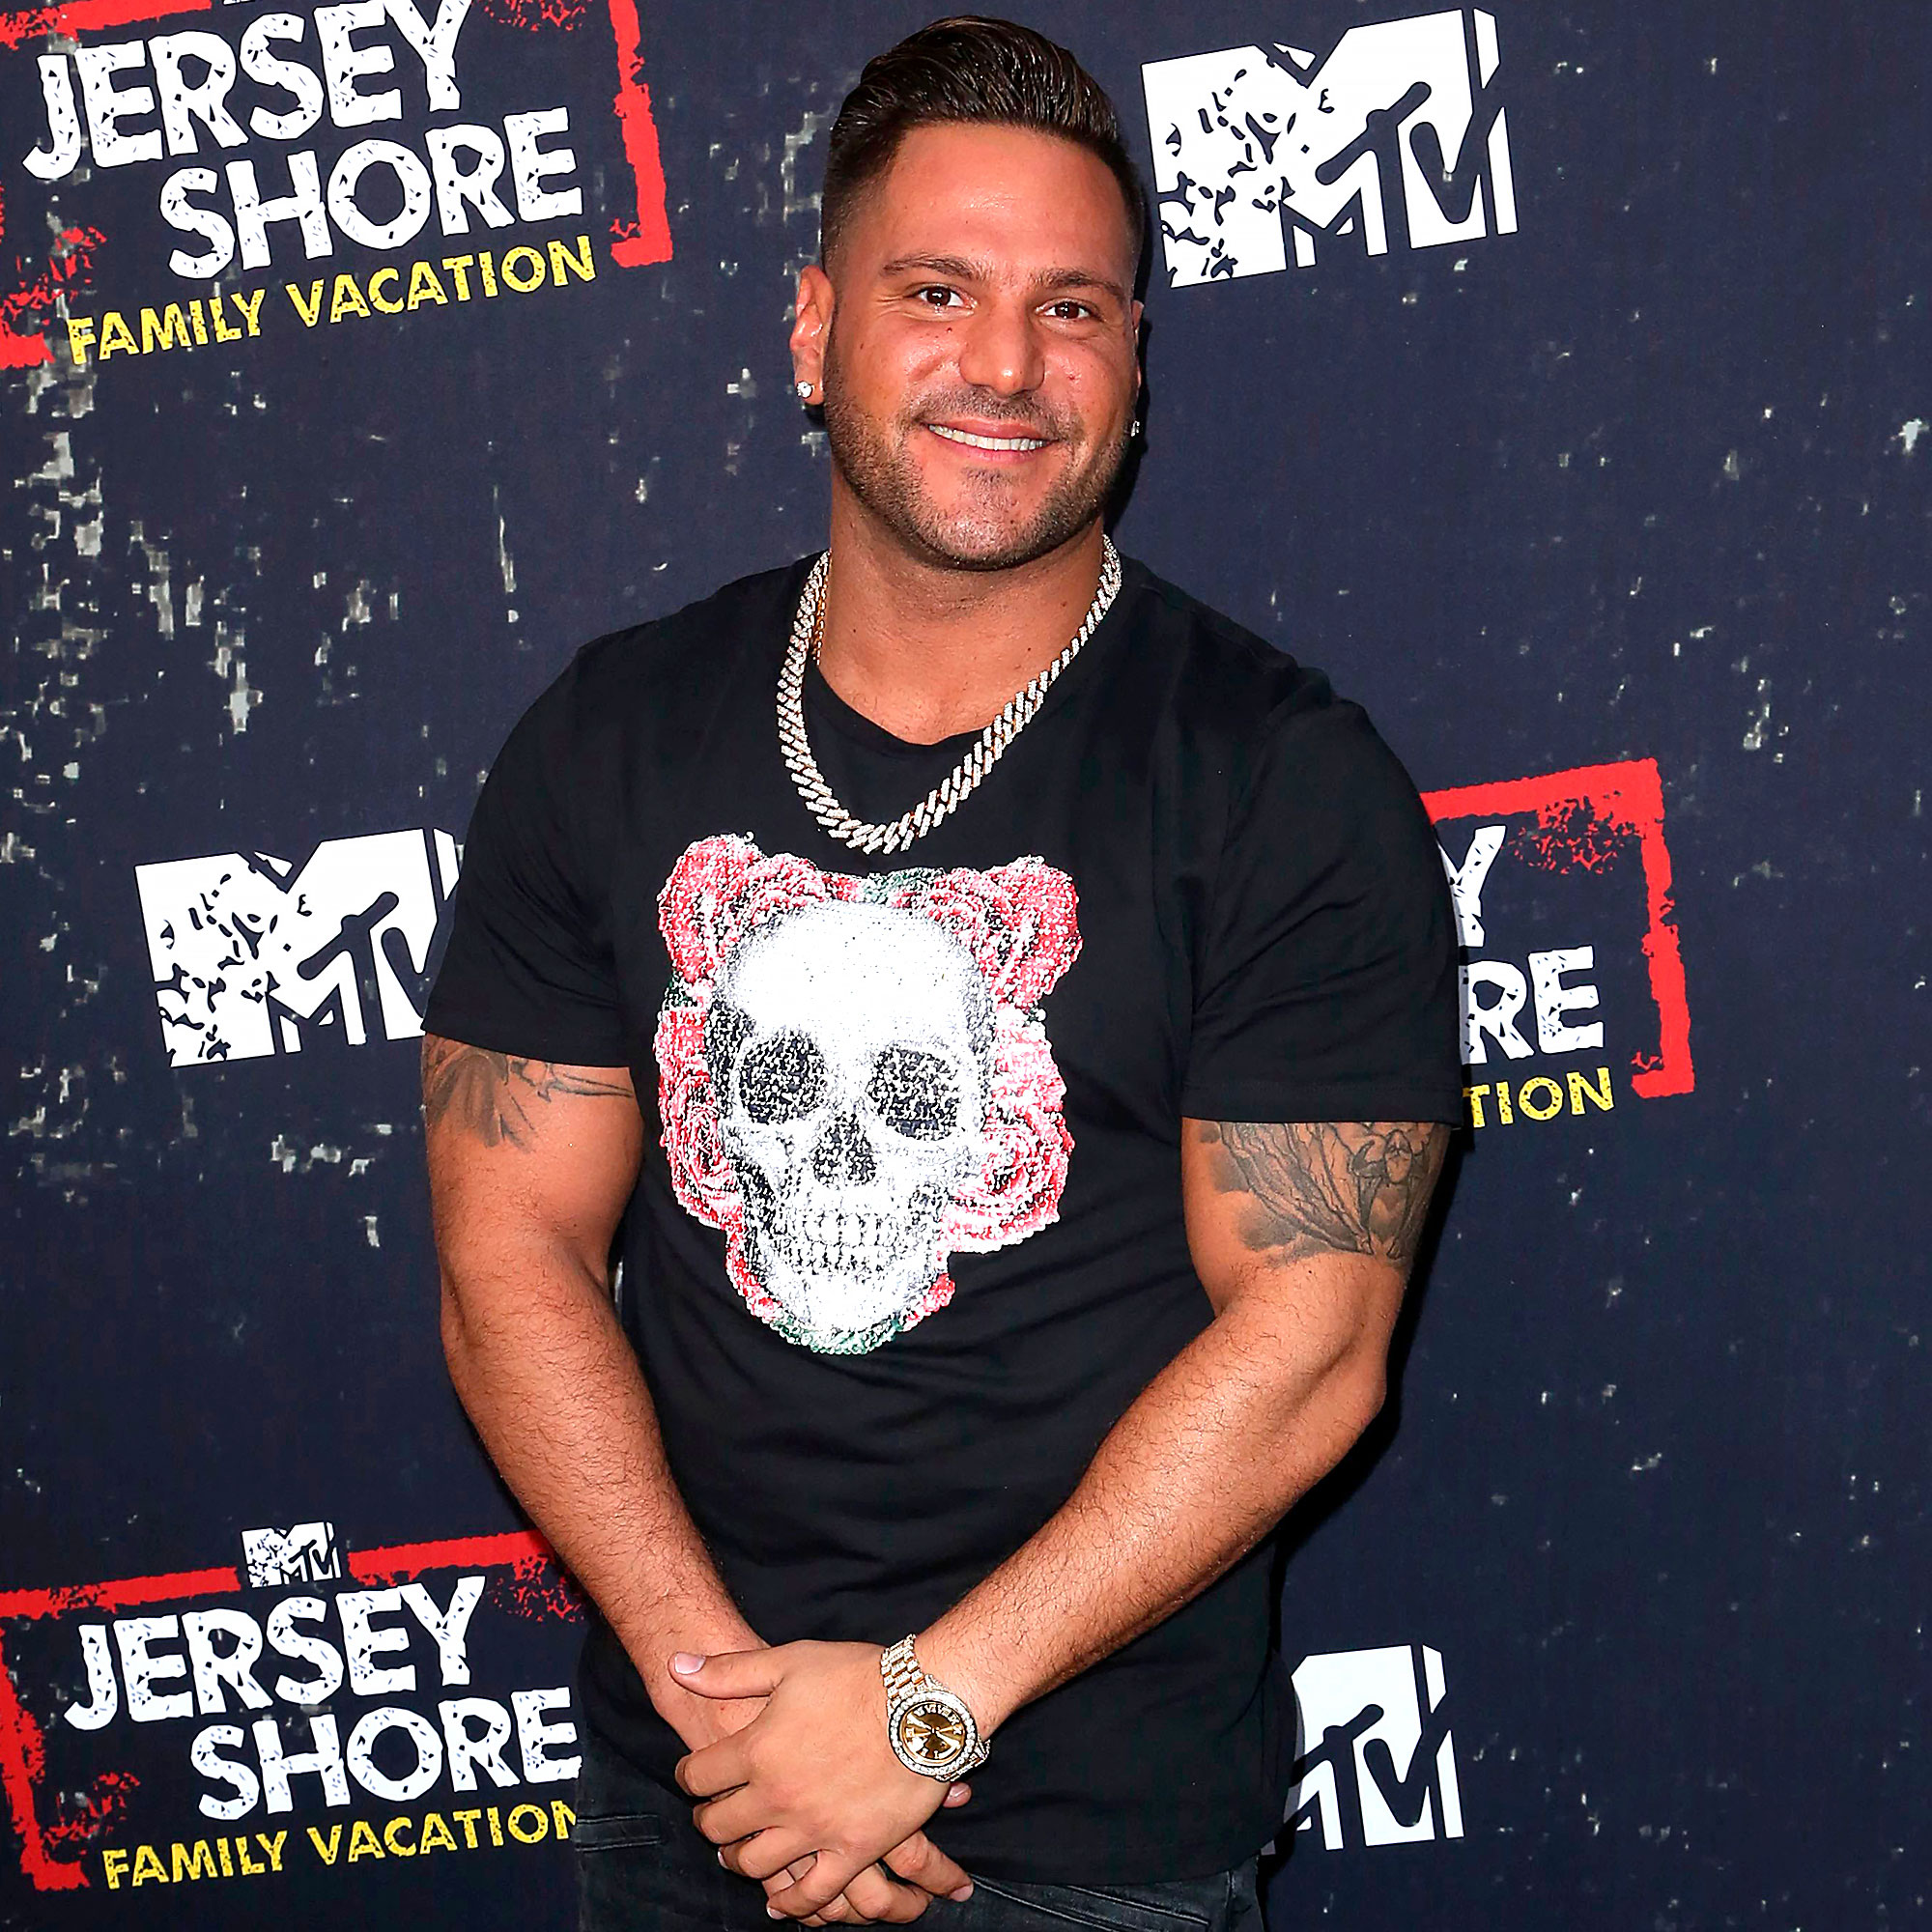 Jersey Shore's Ronnie Ortiz-Magro Speaks Out After Arrest